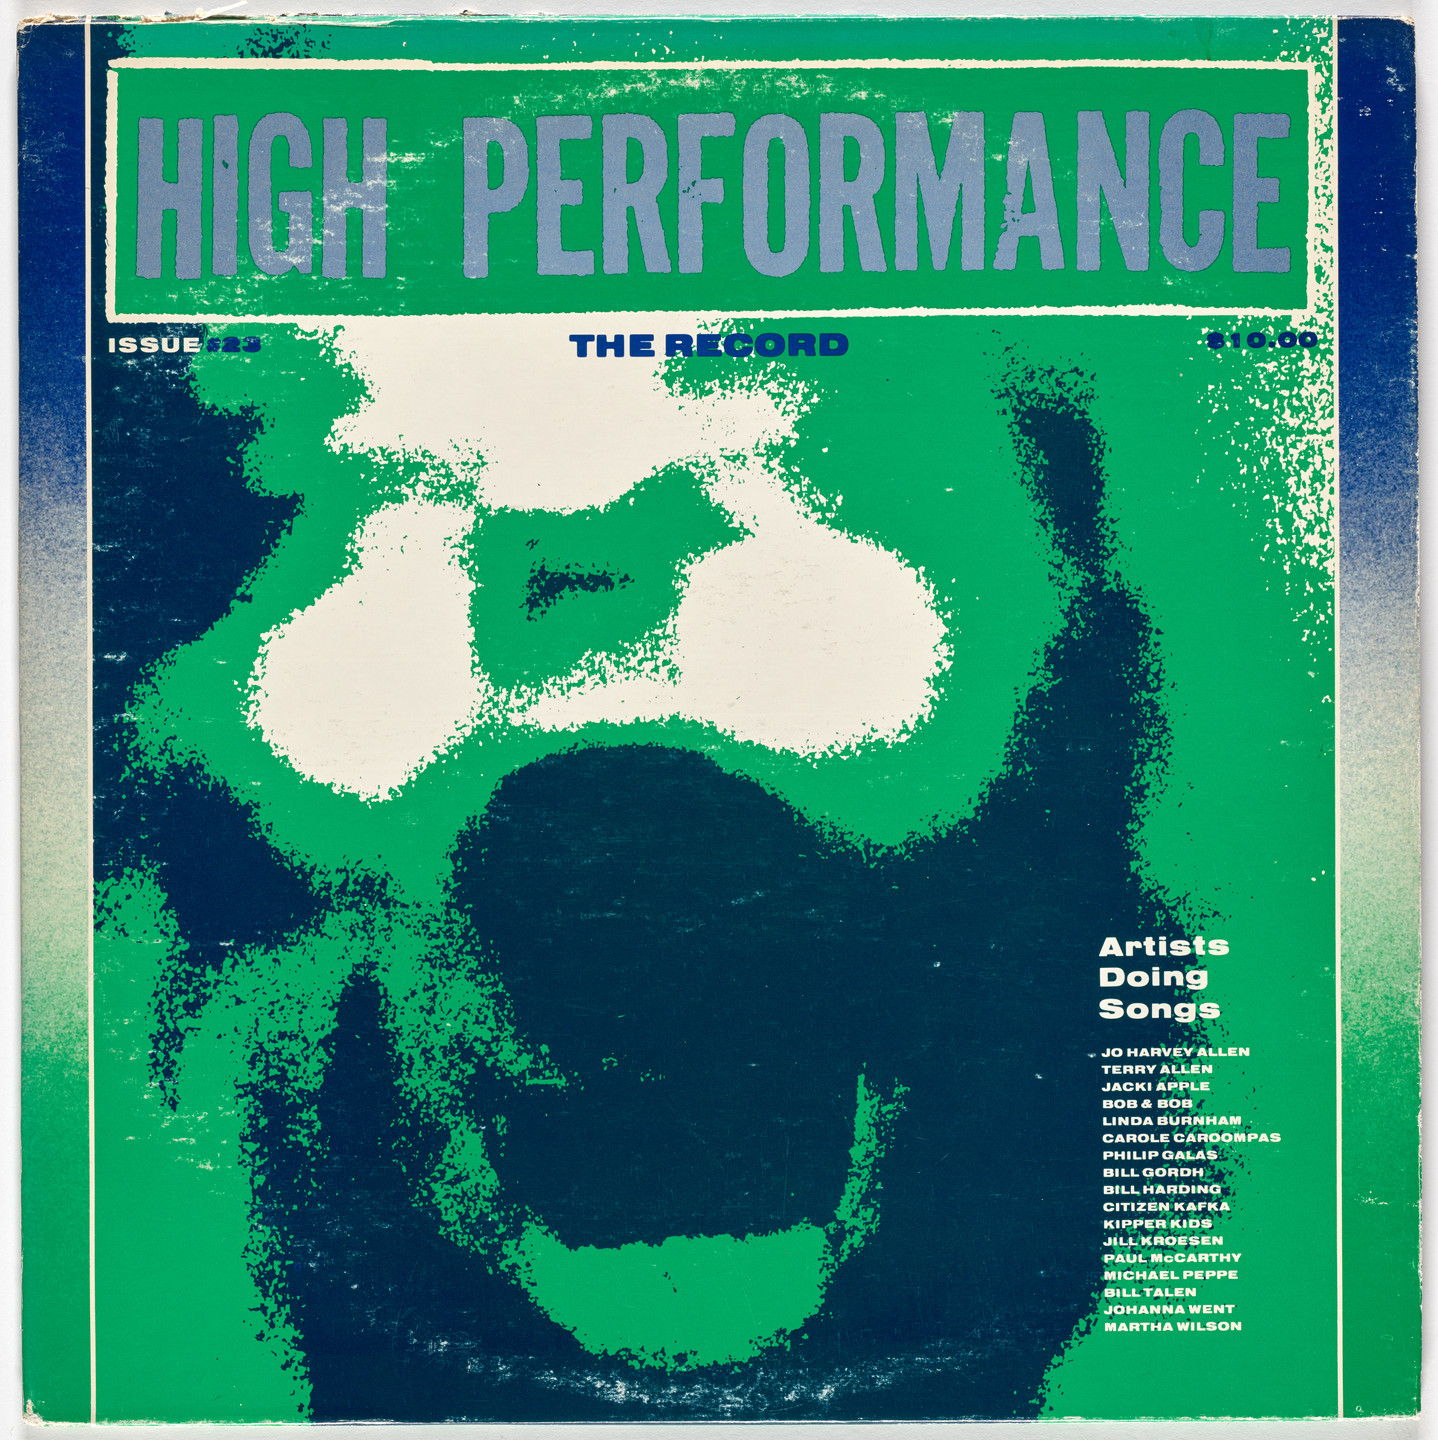 Various Artists. High Performance - The Record (Artists Doing Songs). 1983